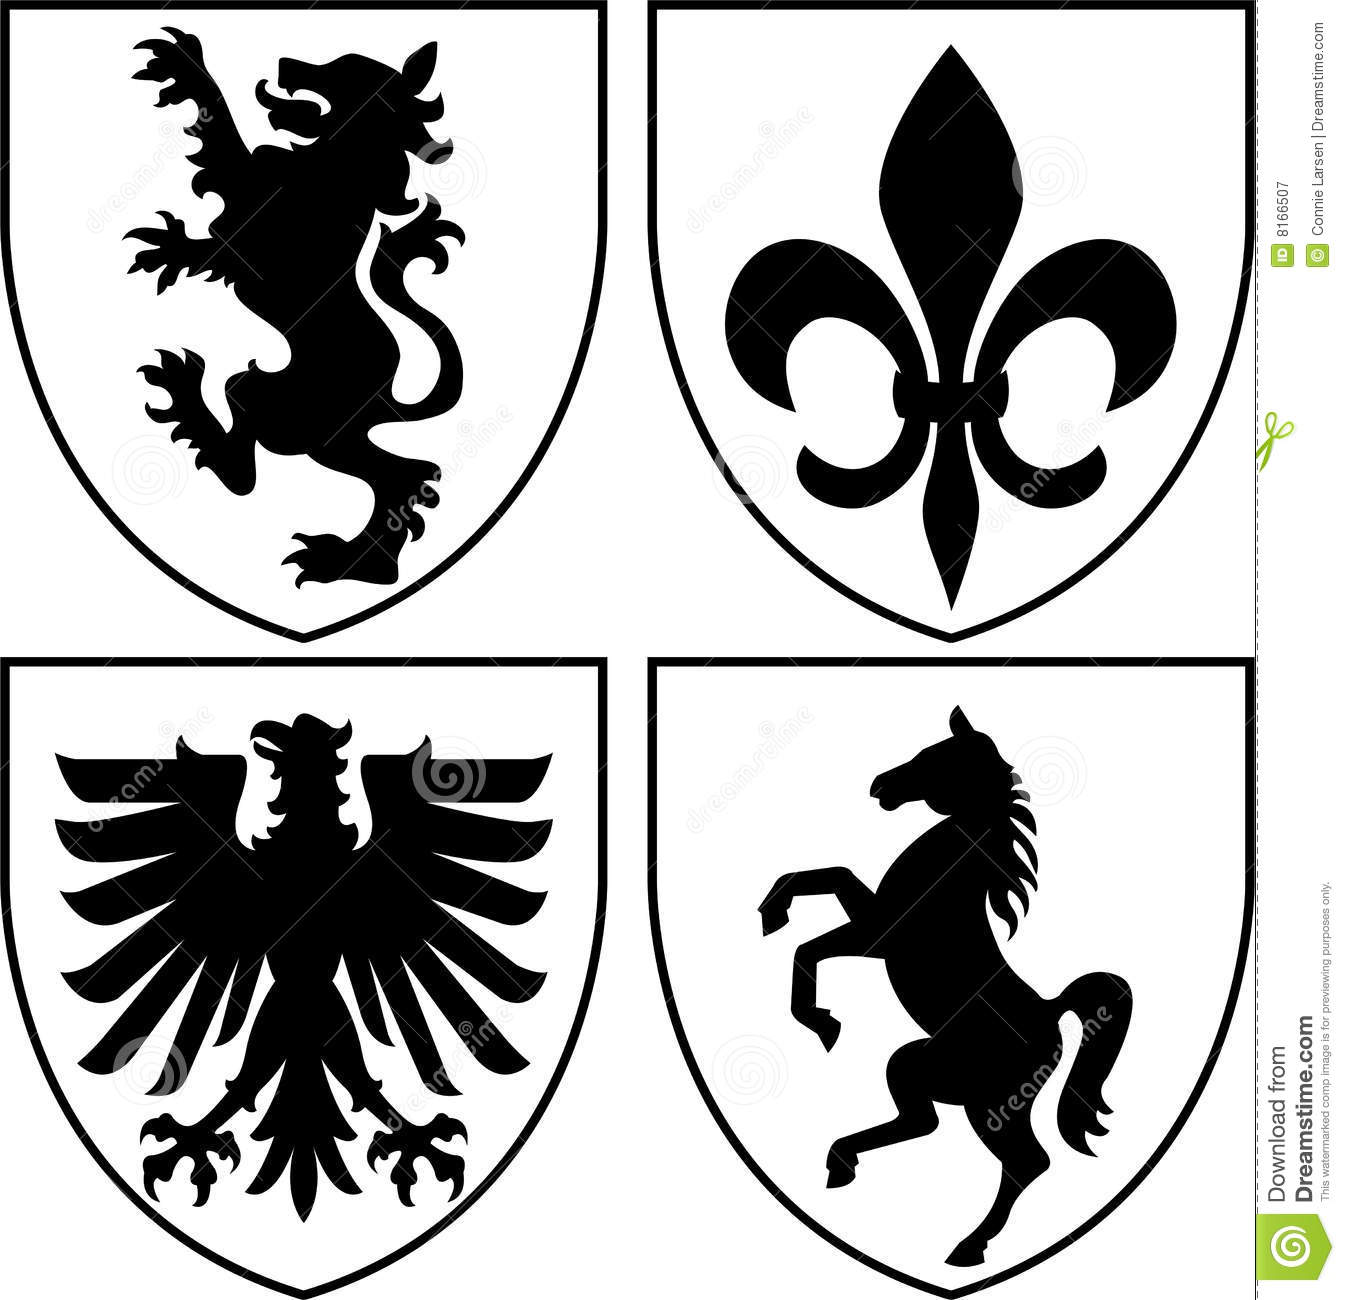 Family Crests Symbols Choice Image Meaning Of Text Symbols